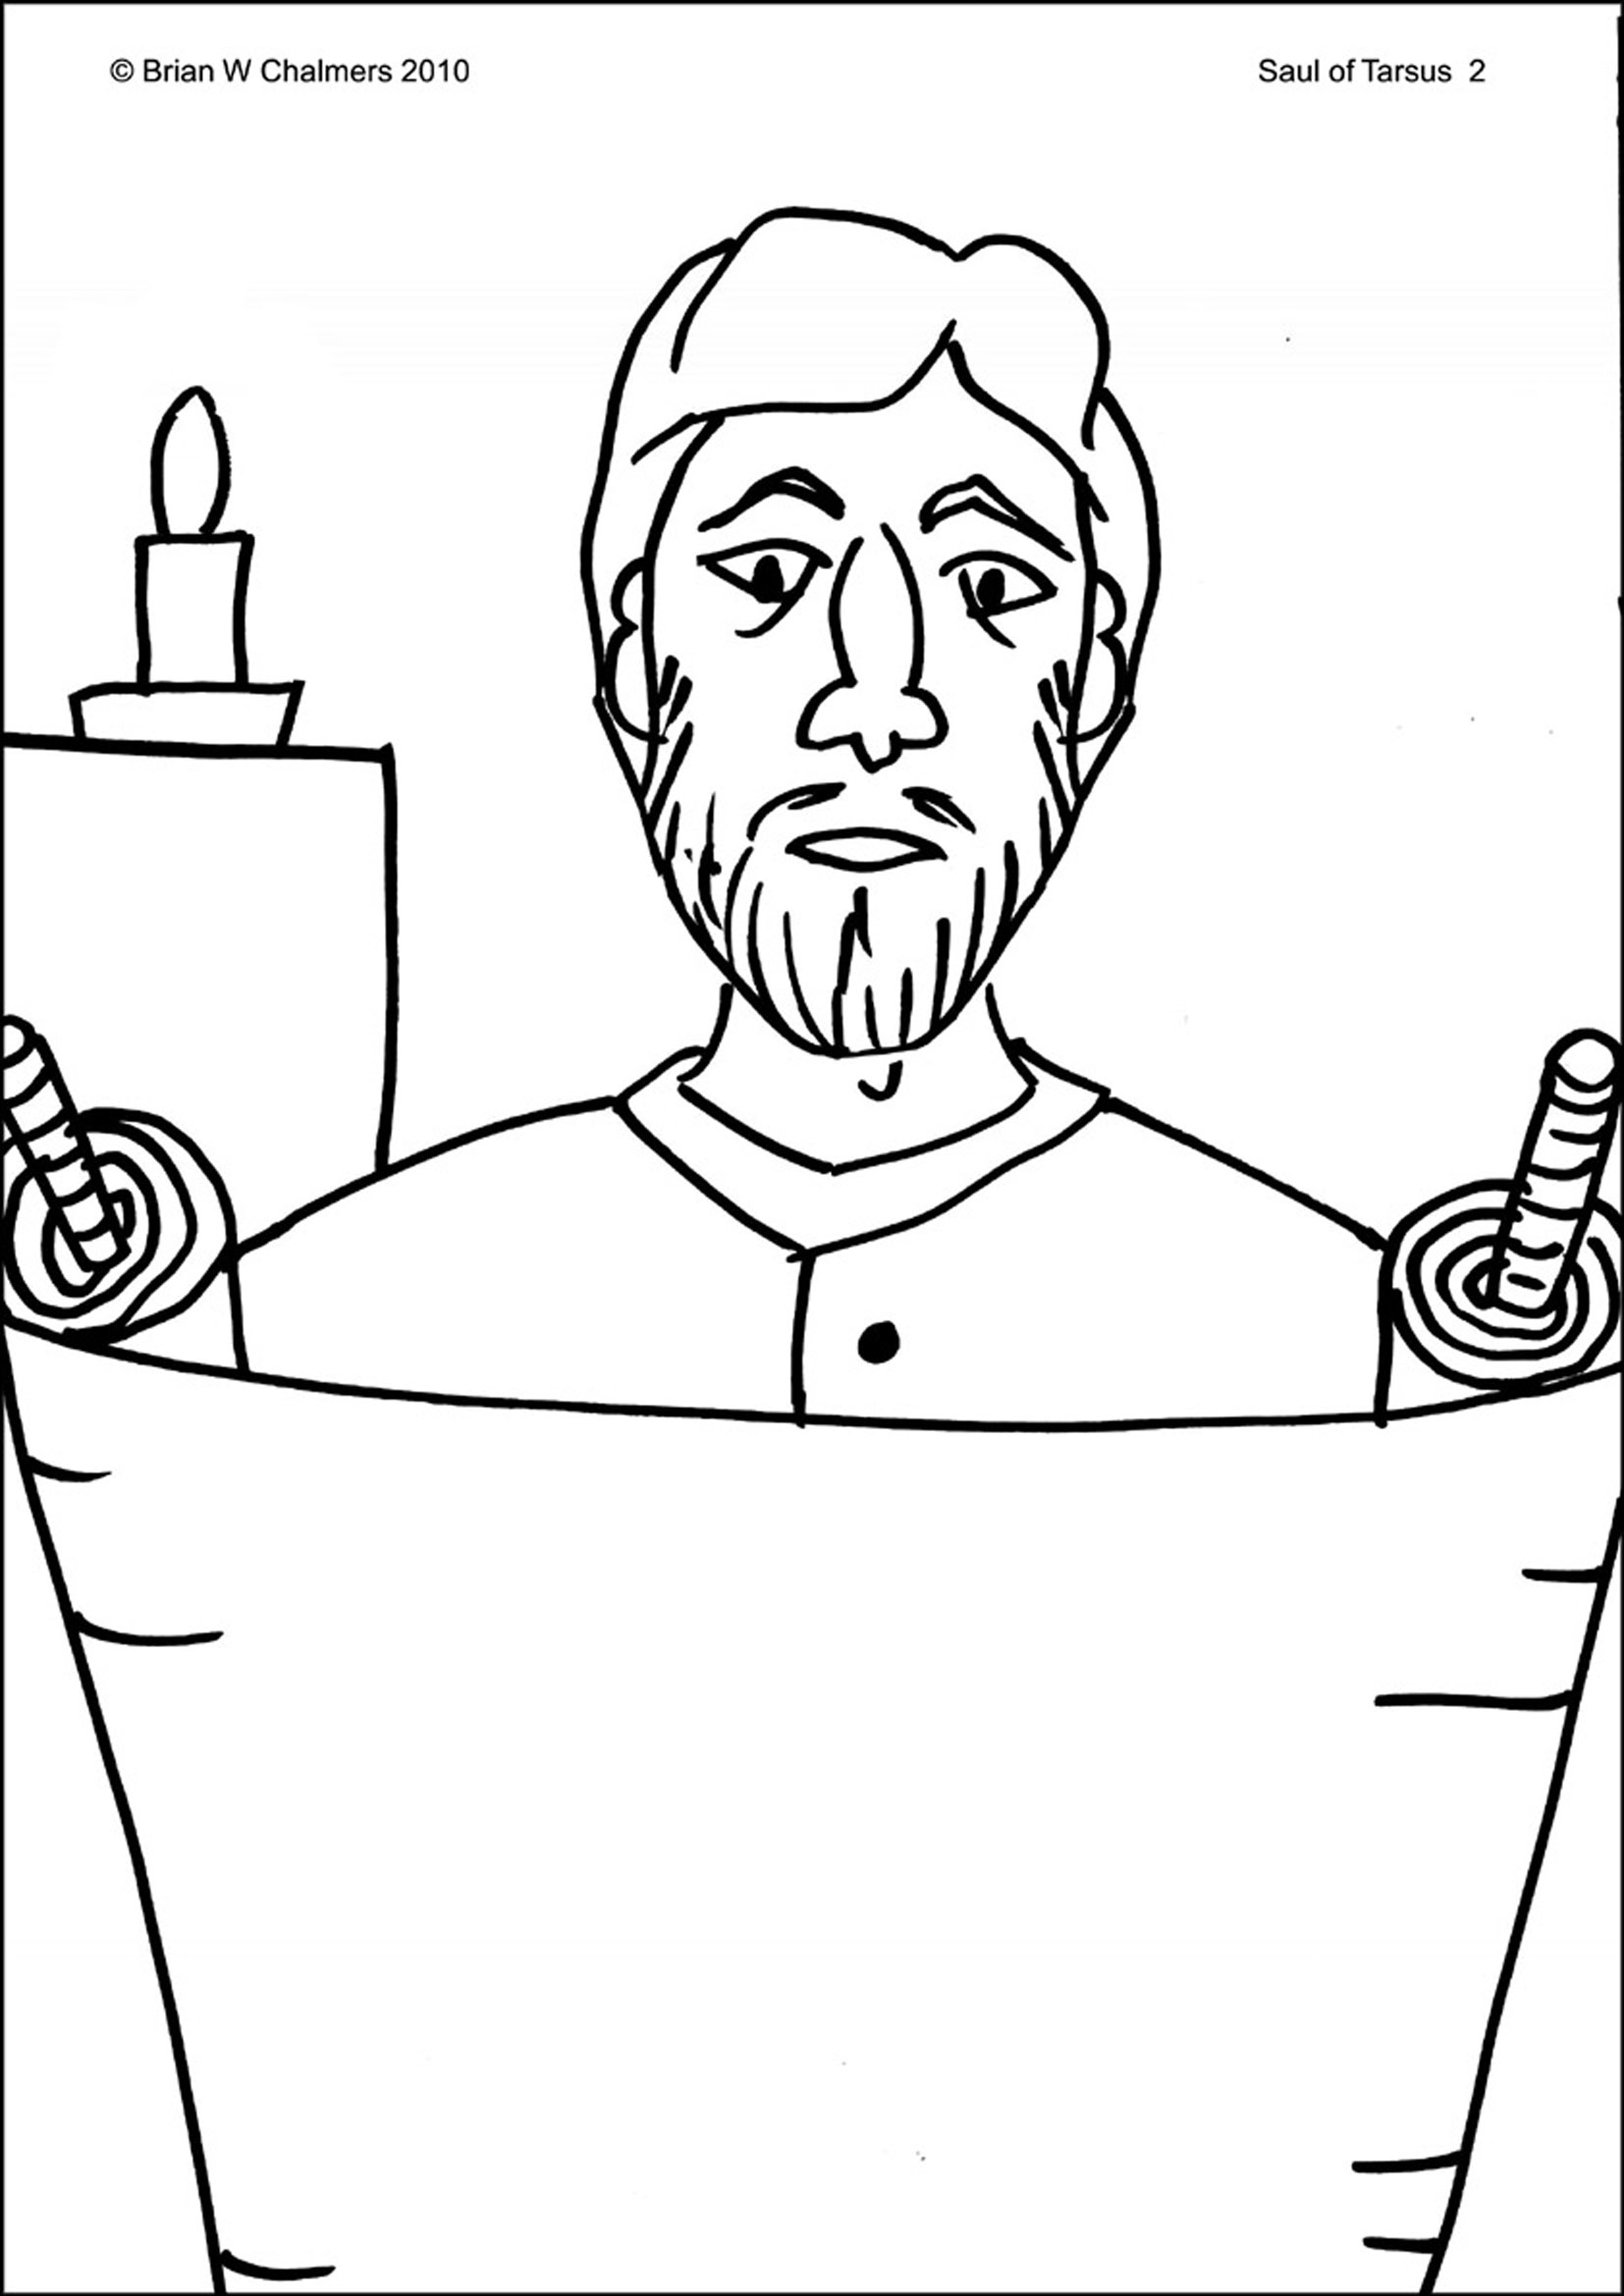 Uncategorized Paul On The Road To Damascus Coloring Page saul of tarsus flip chart ebibleteacher coloring page